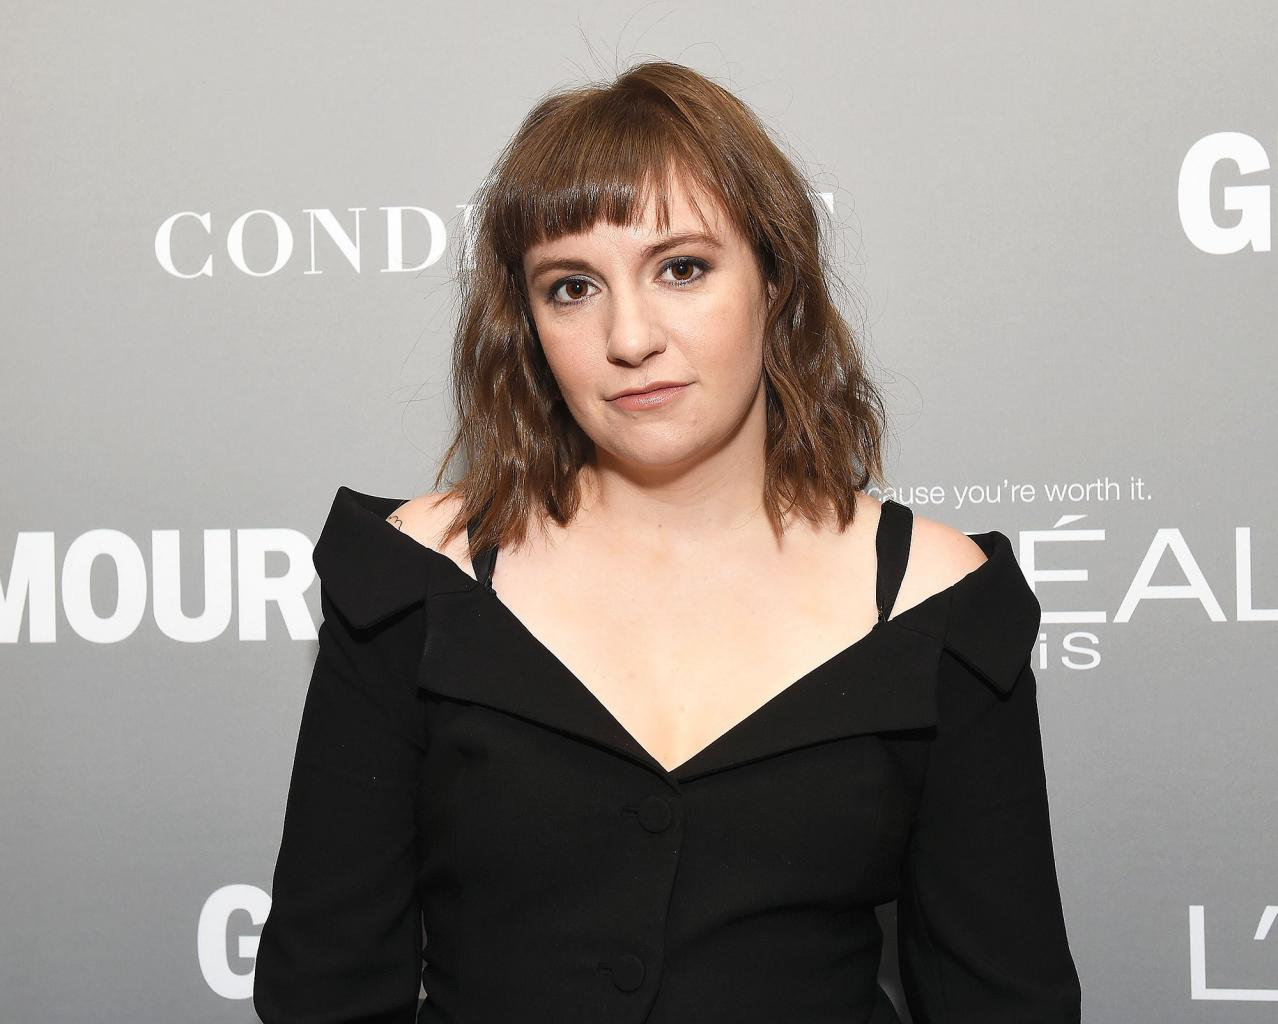 Lena Dunham Says She  's Had Her Period for 13 Days